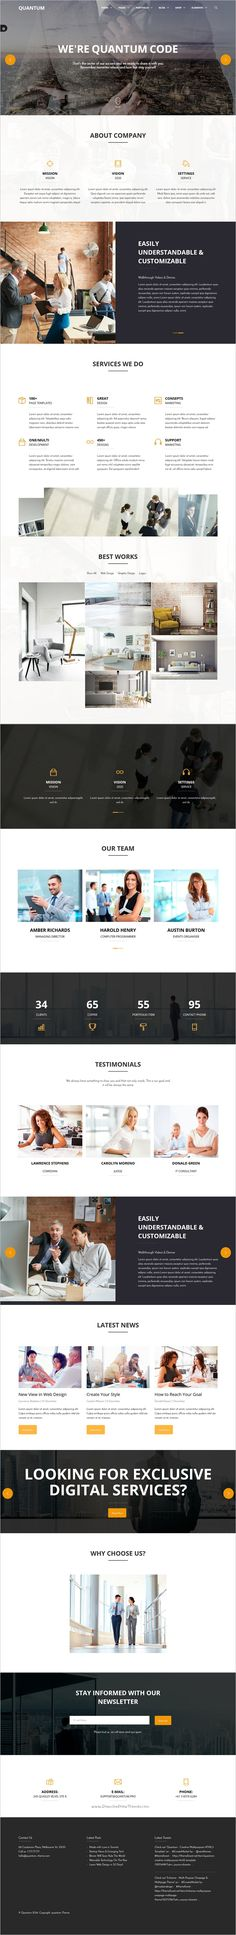 Quantum is a perfect responsive #Bootstrap #HTML theme for multipurpose #corporate onepage or multipage website with 40+ unique homepage layouts download now➩ https://themeforest.net/item/quantum-creative-multipurpose-html5-template/18704981?ref=Datasata